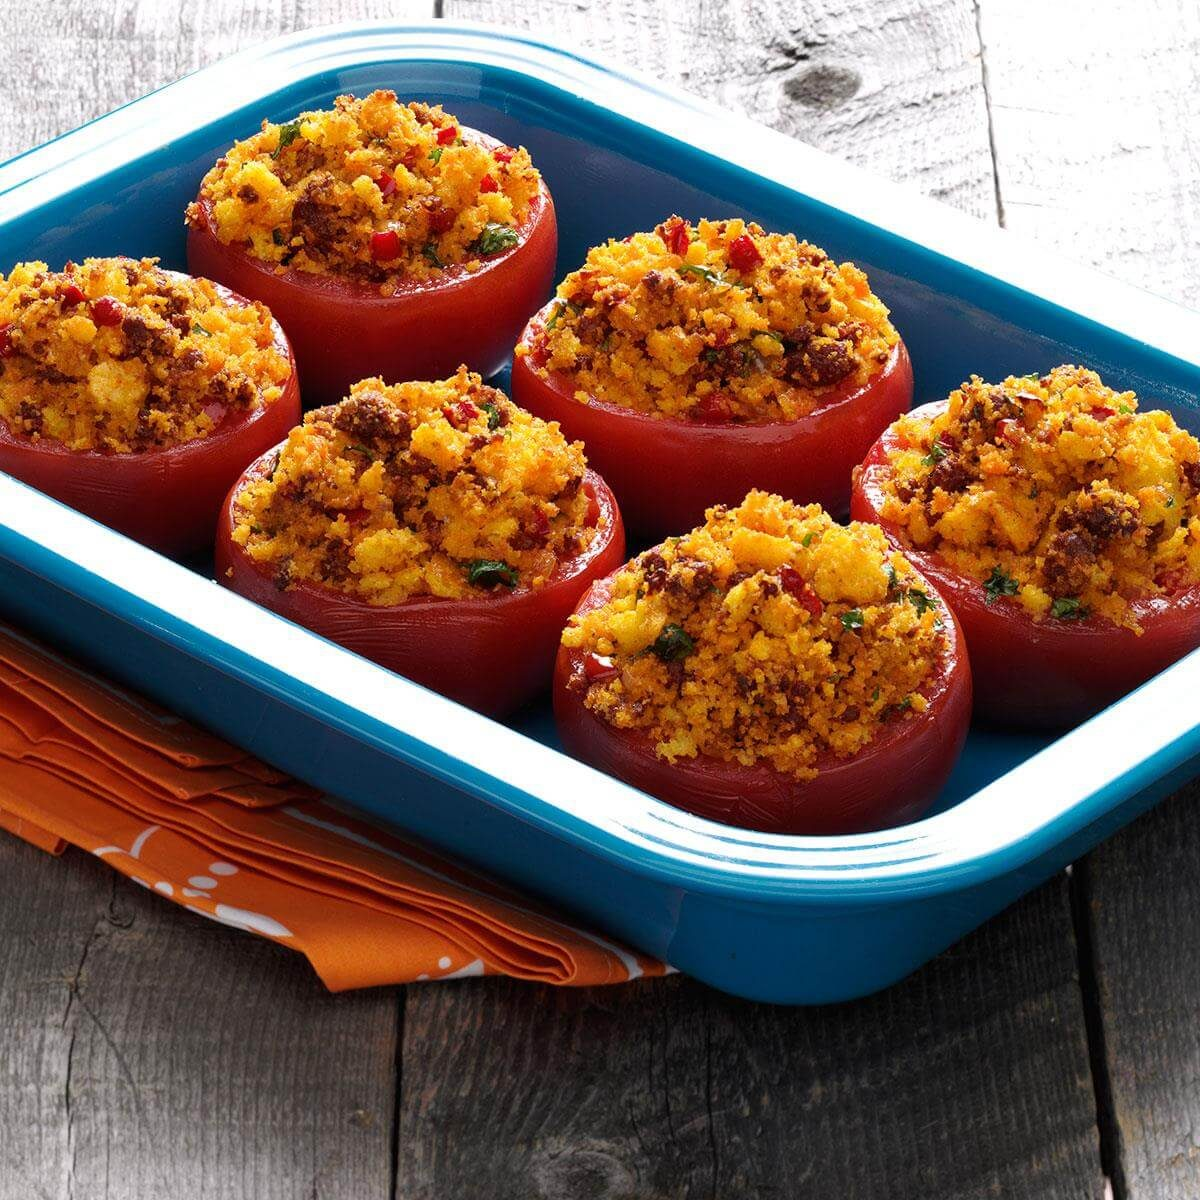 Communication on this topic: Tomatoes Stuffed with Corn Chili, tomatoes-stuffed-with-corn-chili/